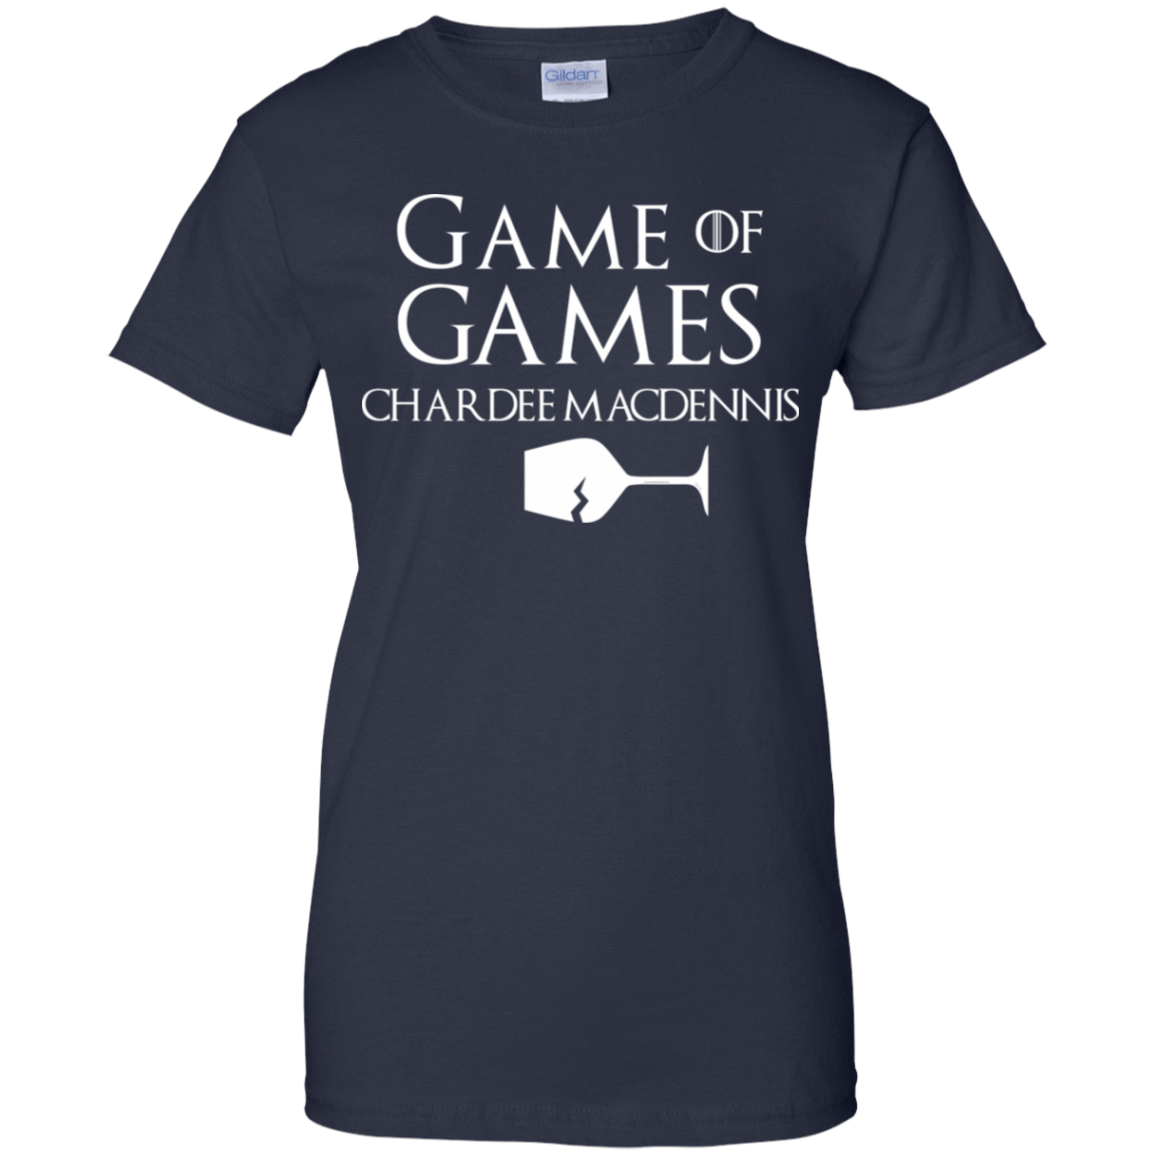 Game Of Games Chardee Macdennis 939-9259-72957245-44765 - Tee Ript